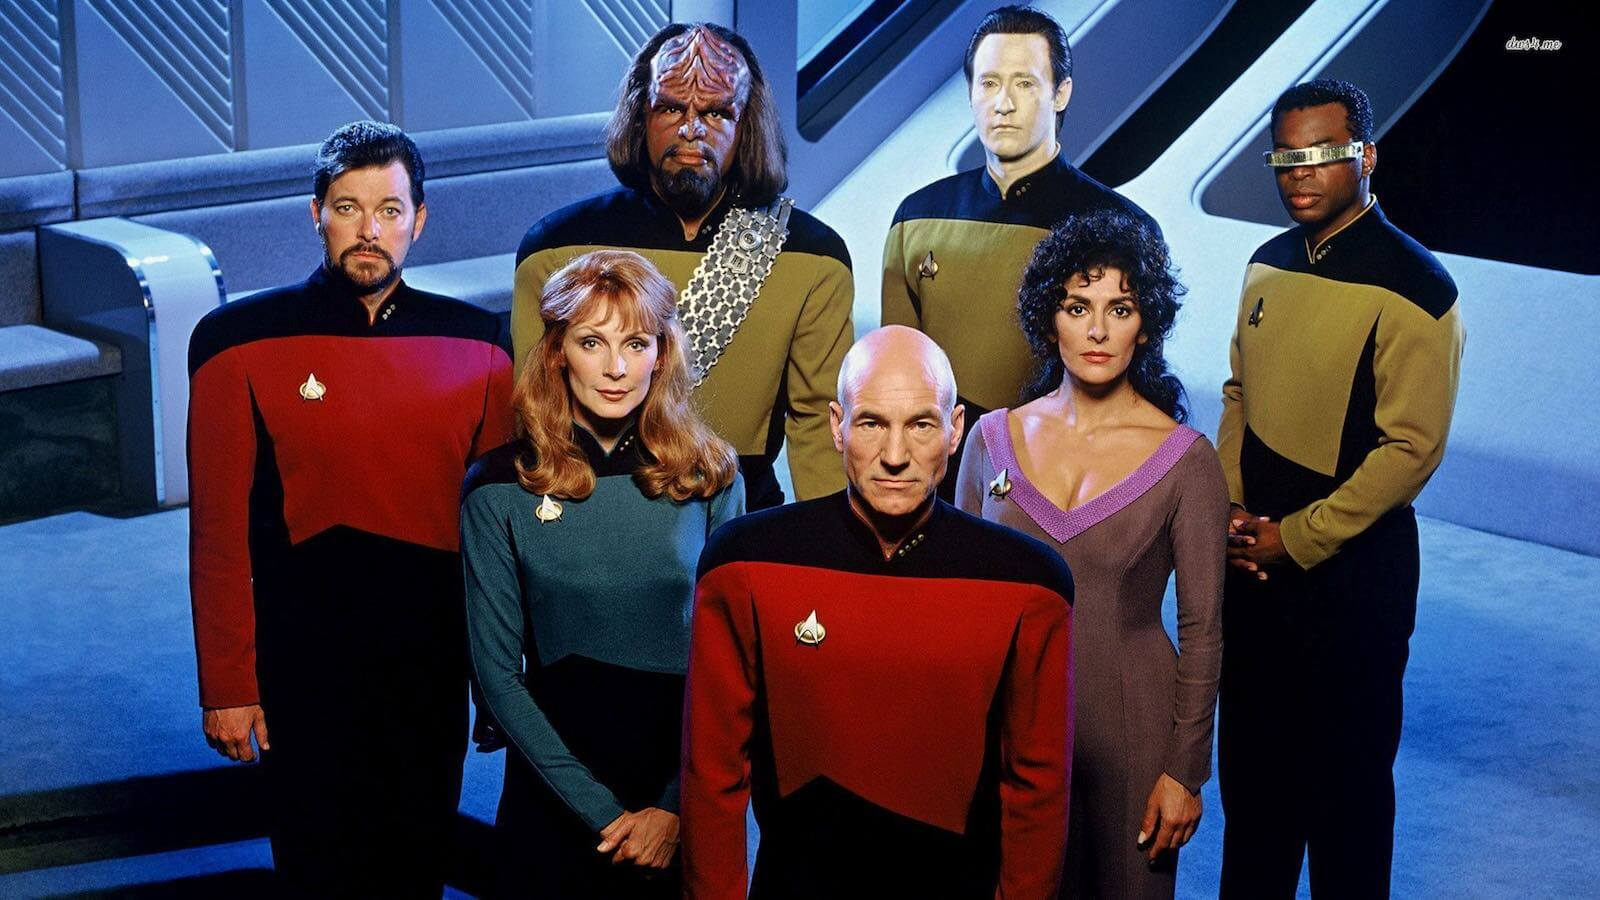 How to Pitch a TV Show - Star Trek